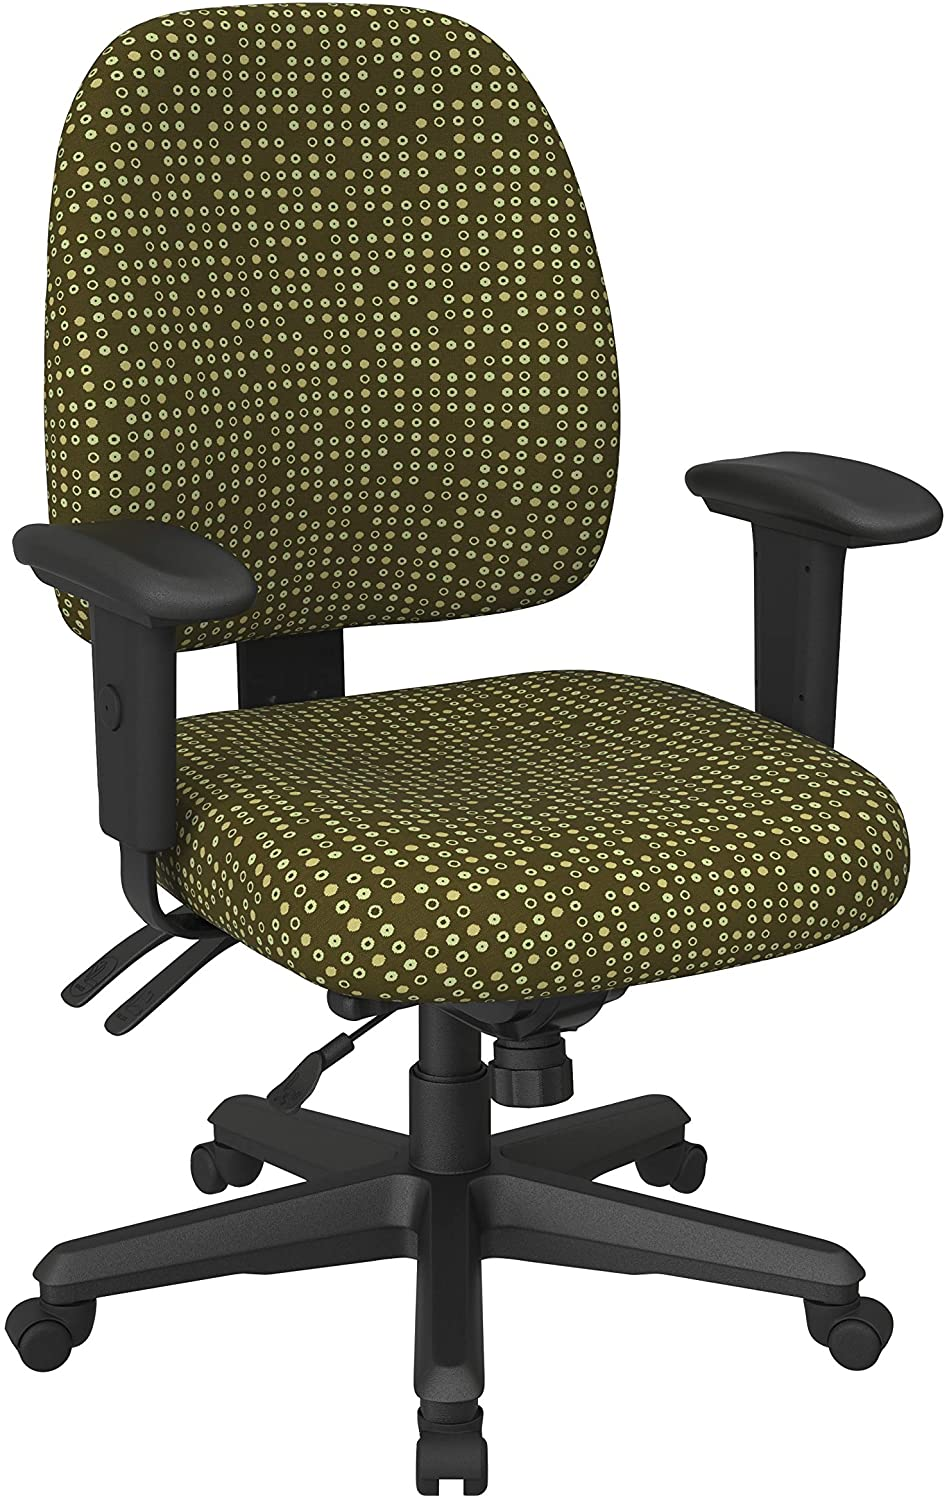 Office Star Back Mid Ergonomic Office Desk Chair with Adjustable Height, Tilt, and Padded Arm Rests, Fine Tune Herb Fabric